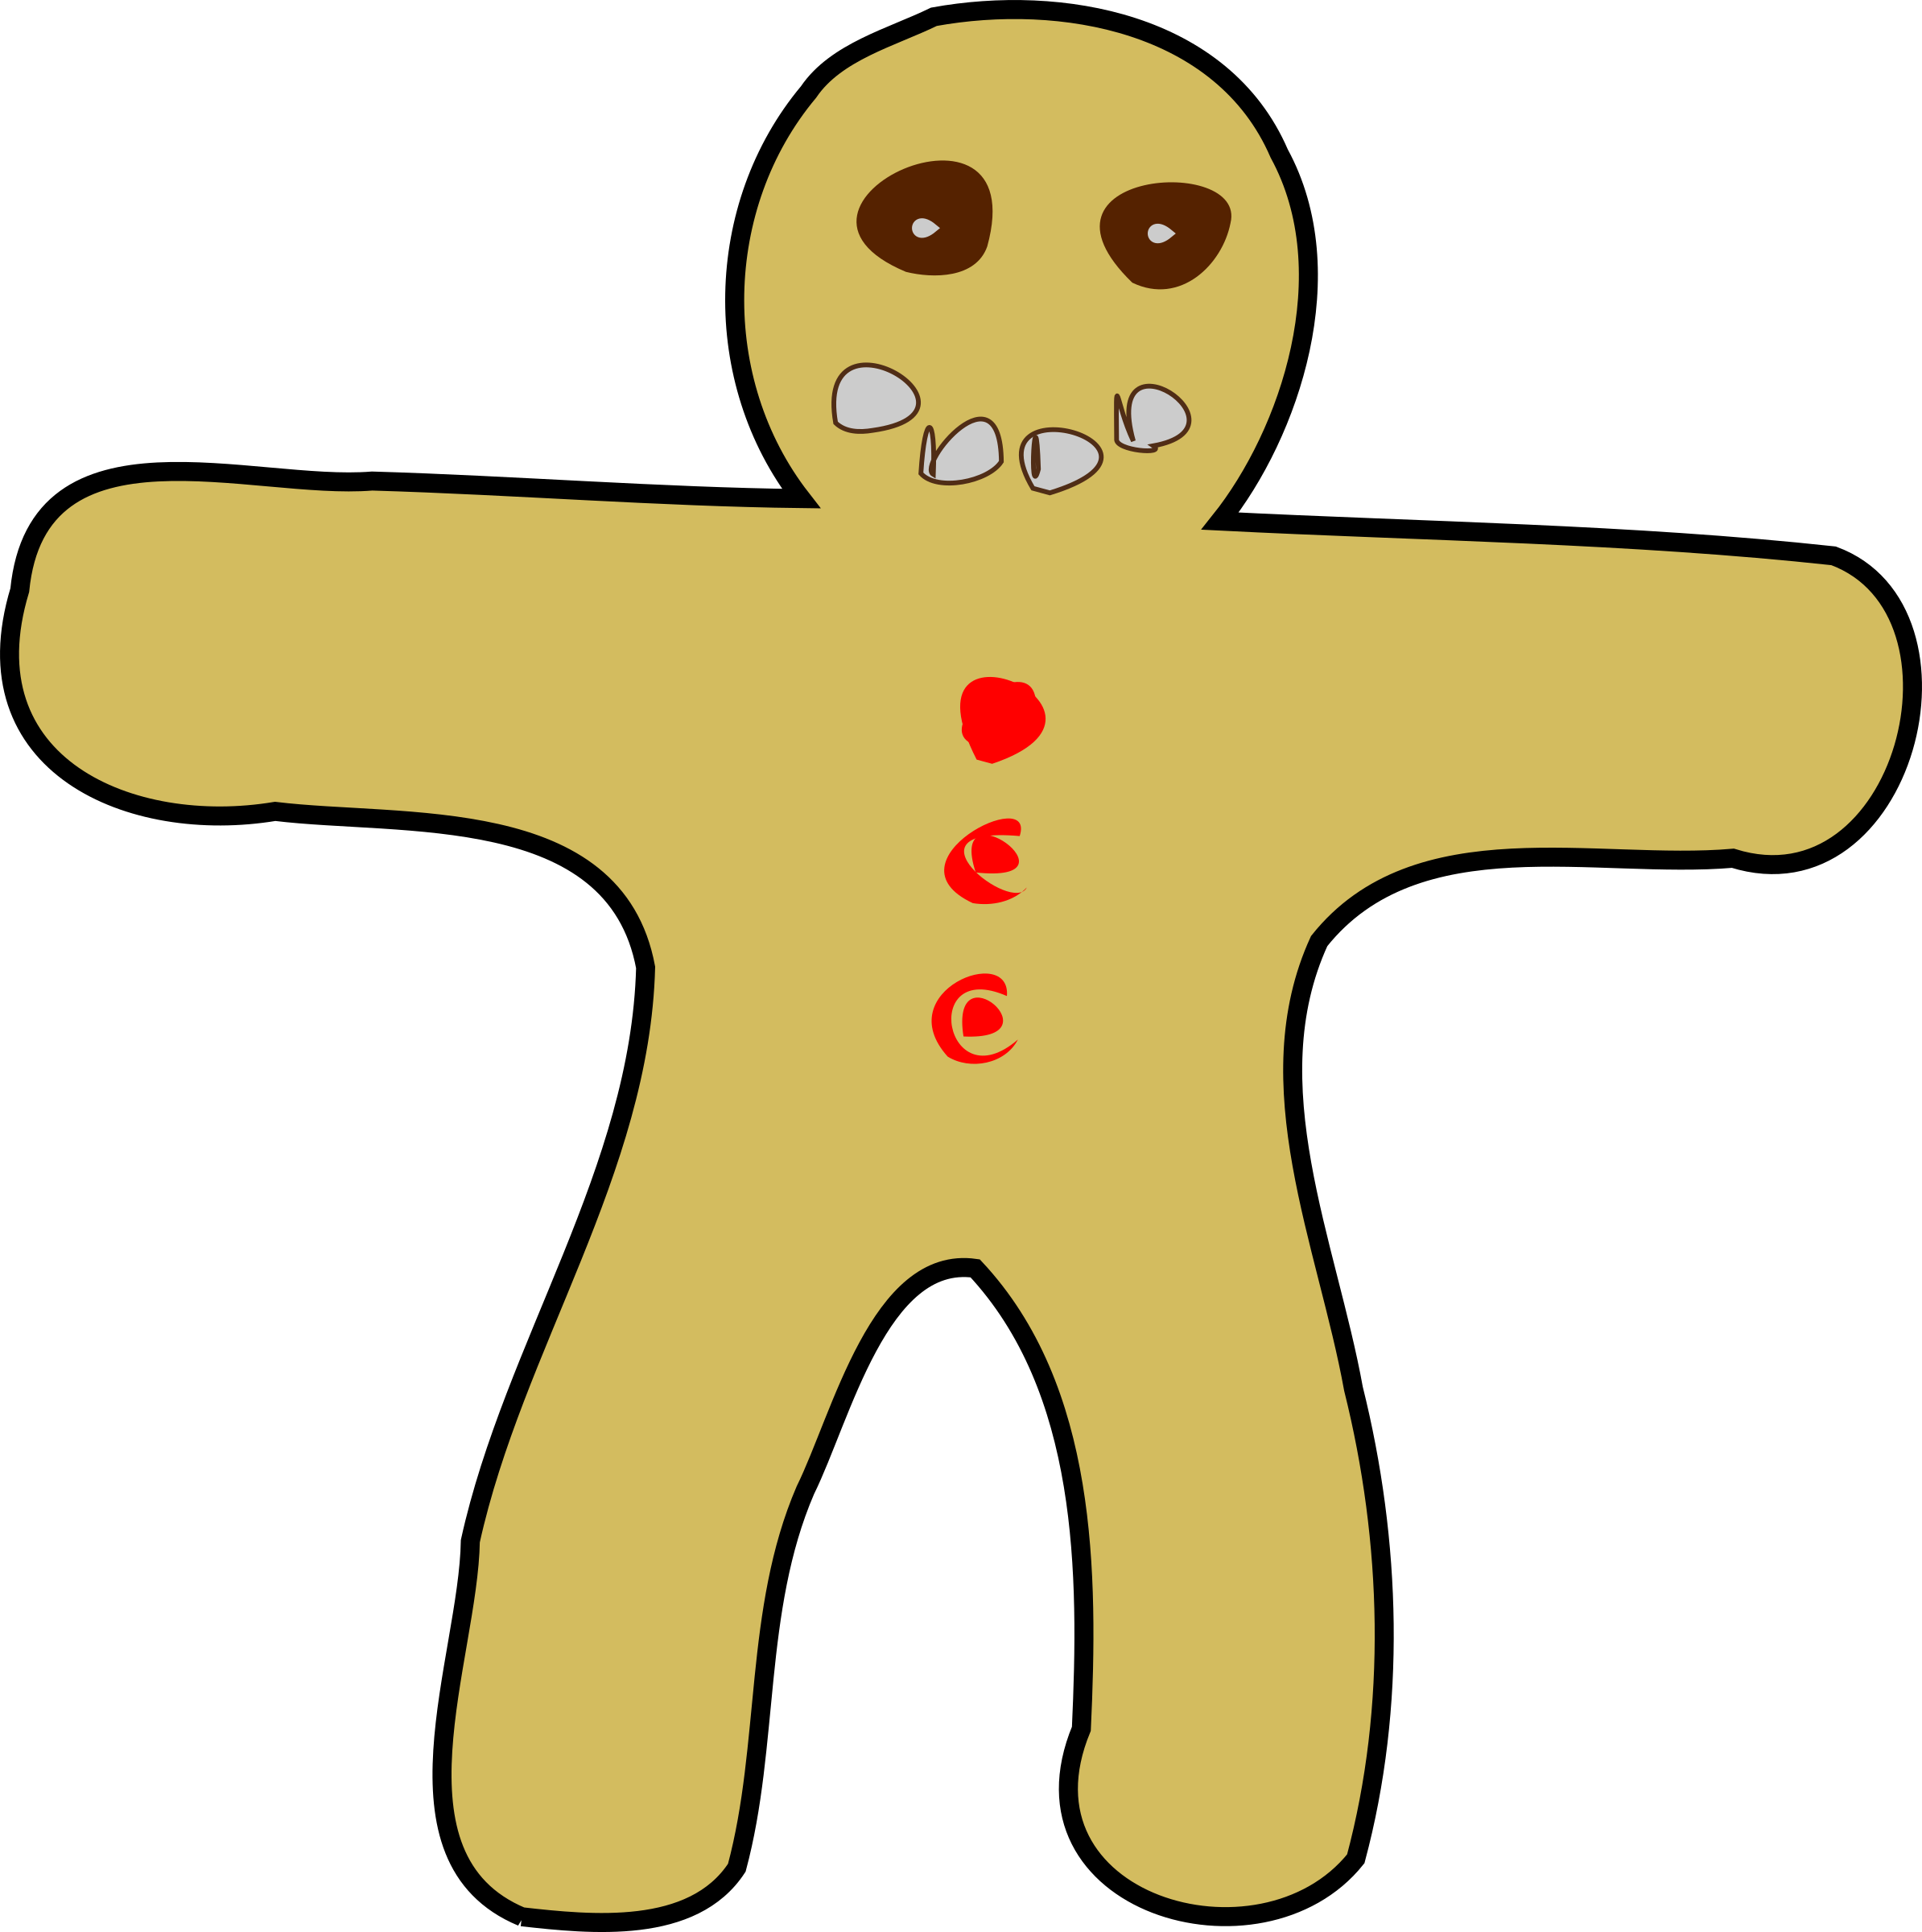 Gingerbread Man by mazeo